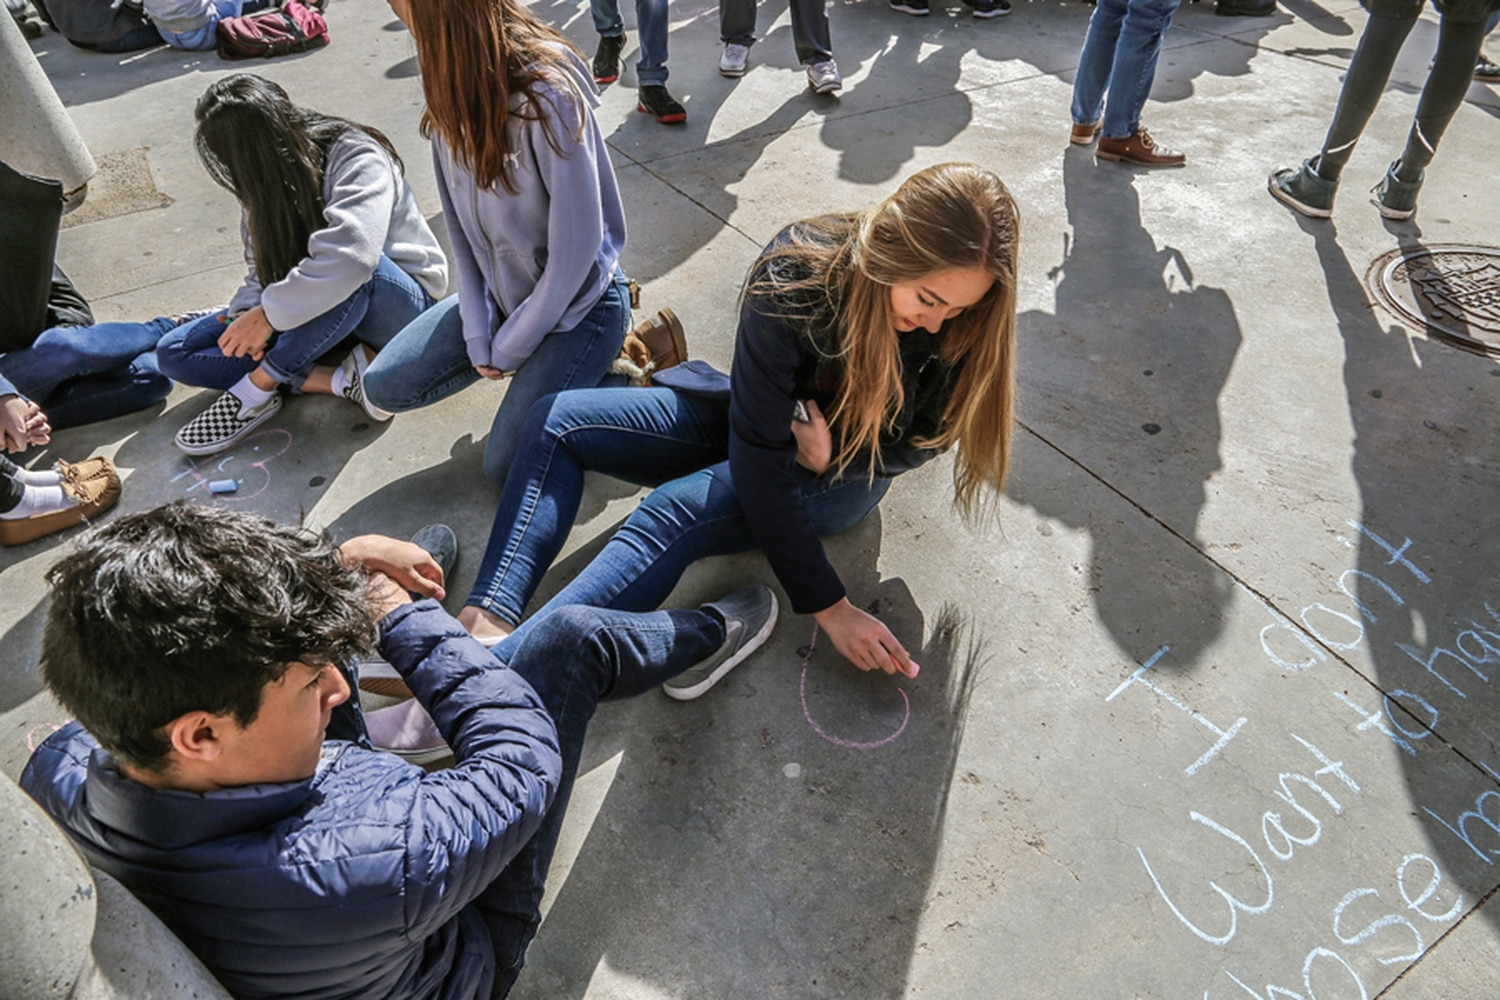 Students participate in the 2018 walkout for gun violence. Firearms account for almost half of all suicides, and for seven youth suicides that occurred in Santa Fe County since 2009.